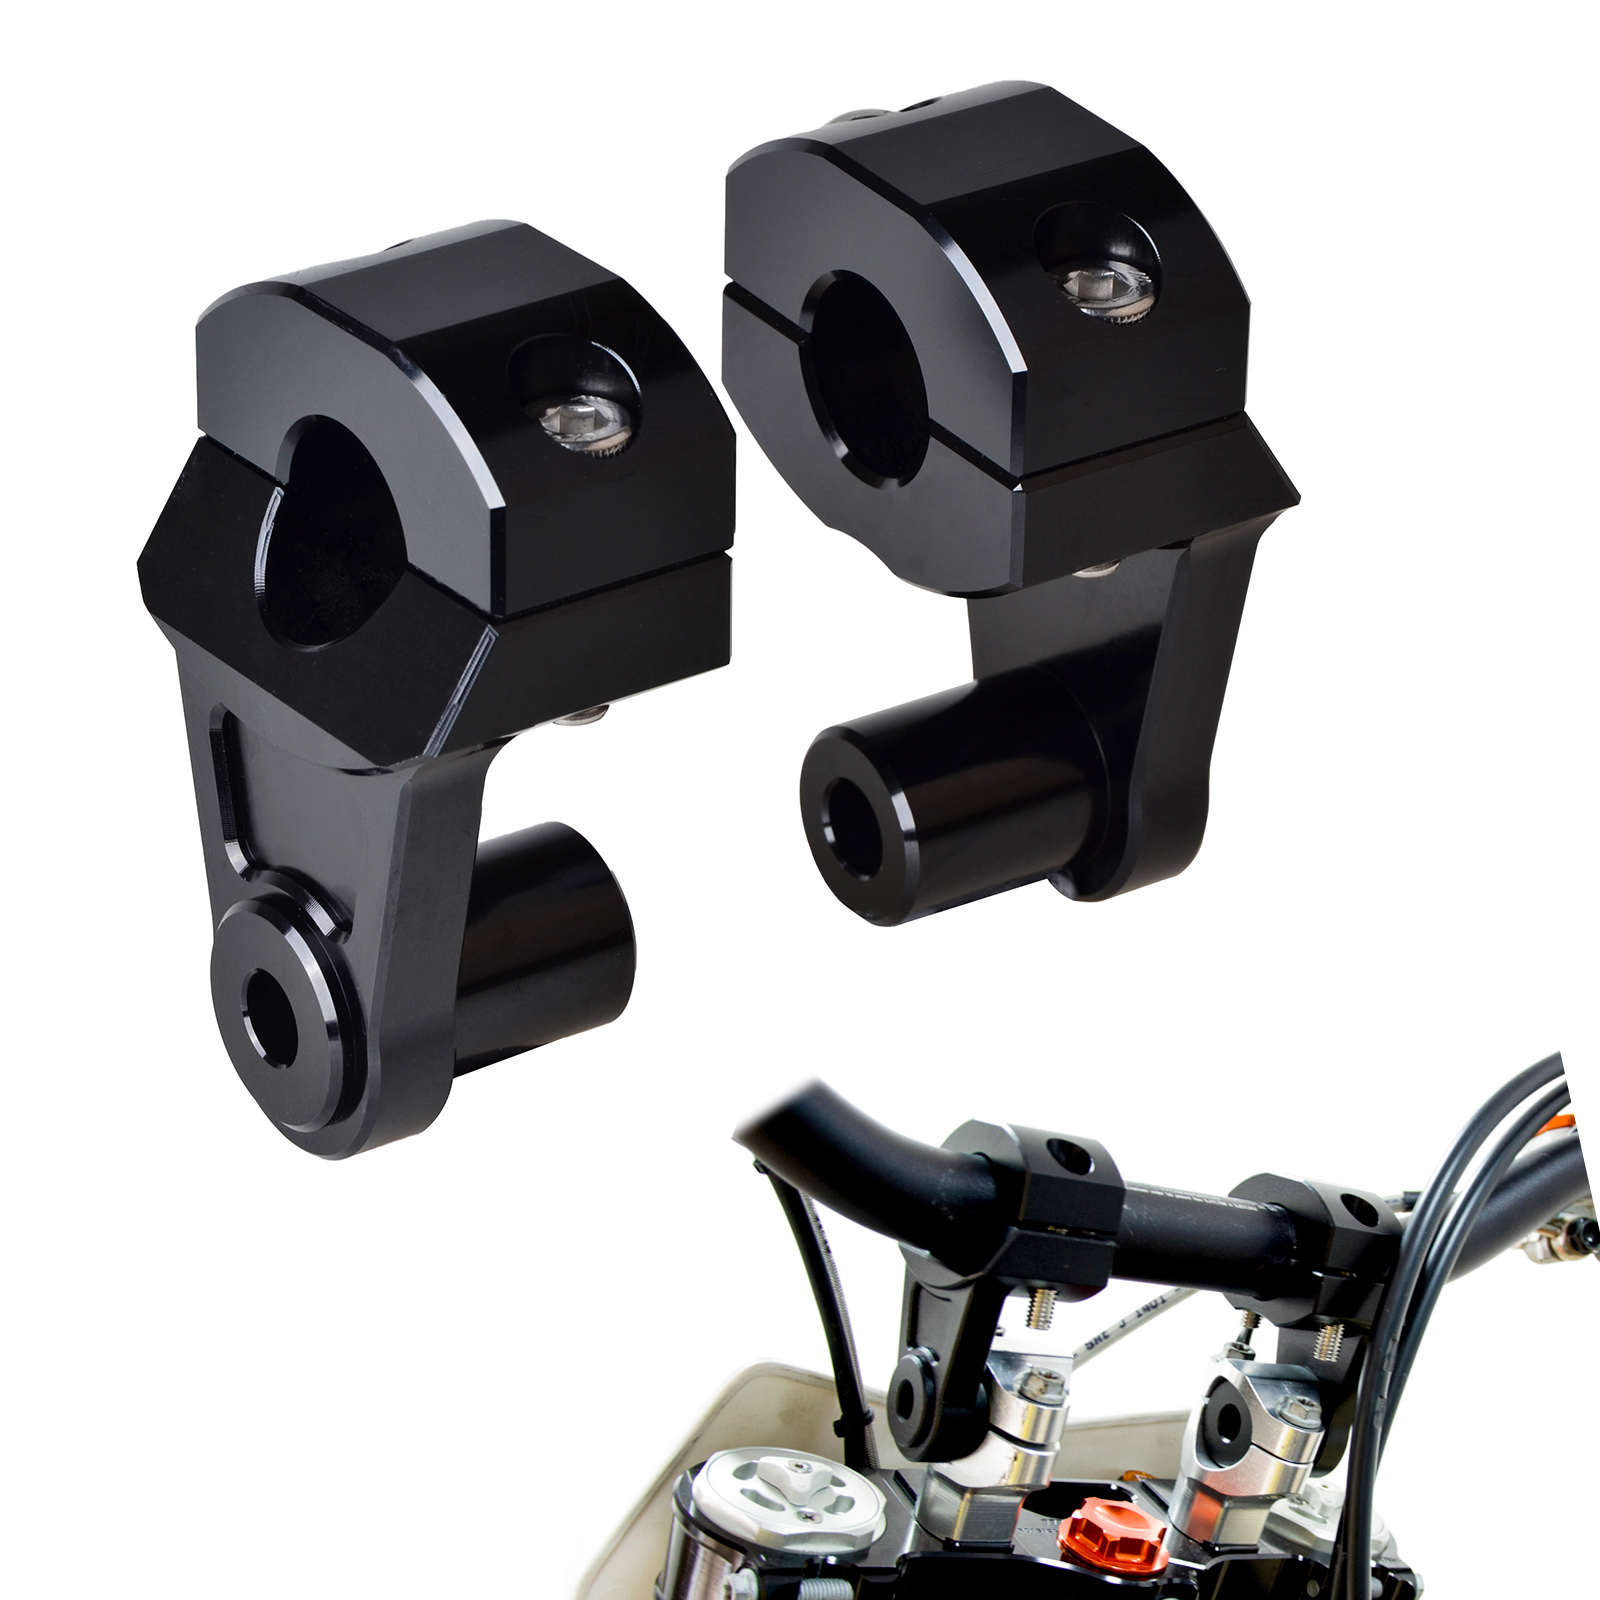 Motorcycle 28mm 1 1 8 quot Pivoting Handlebar Riser Handle Bar Clamps For BMW R1200GS F800GS C650 S1000RR F650GS F700GS X Country in Covers amp Ornamental Mouldings from Automobiles amp Motorcycles